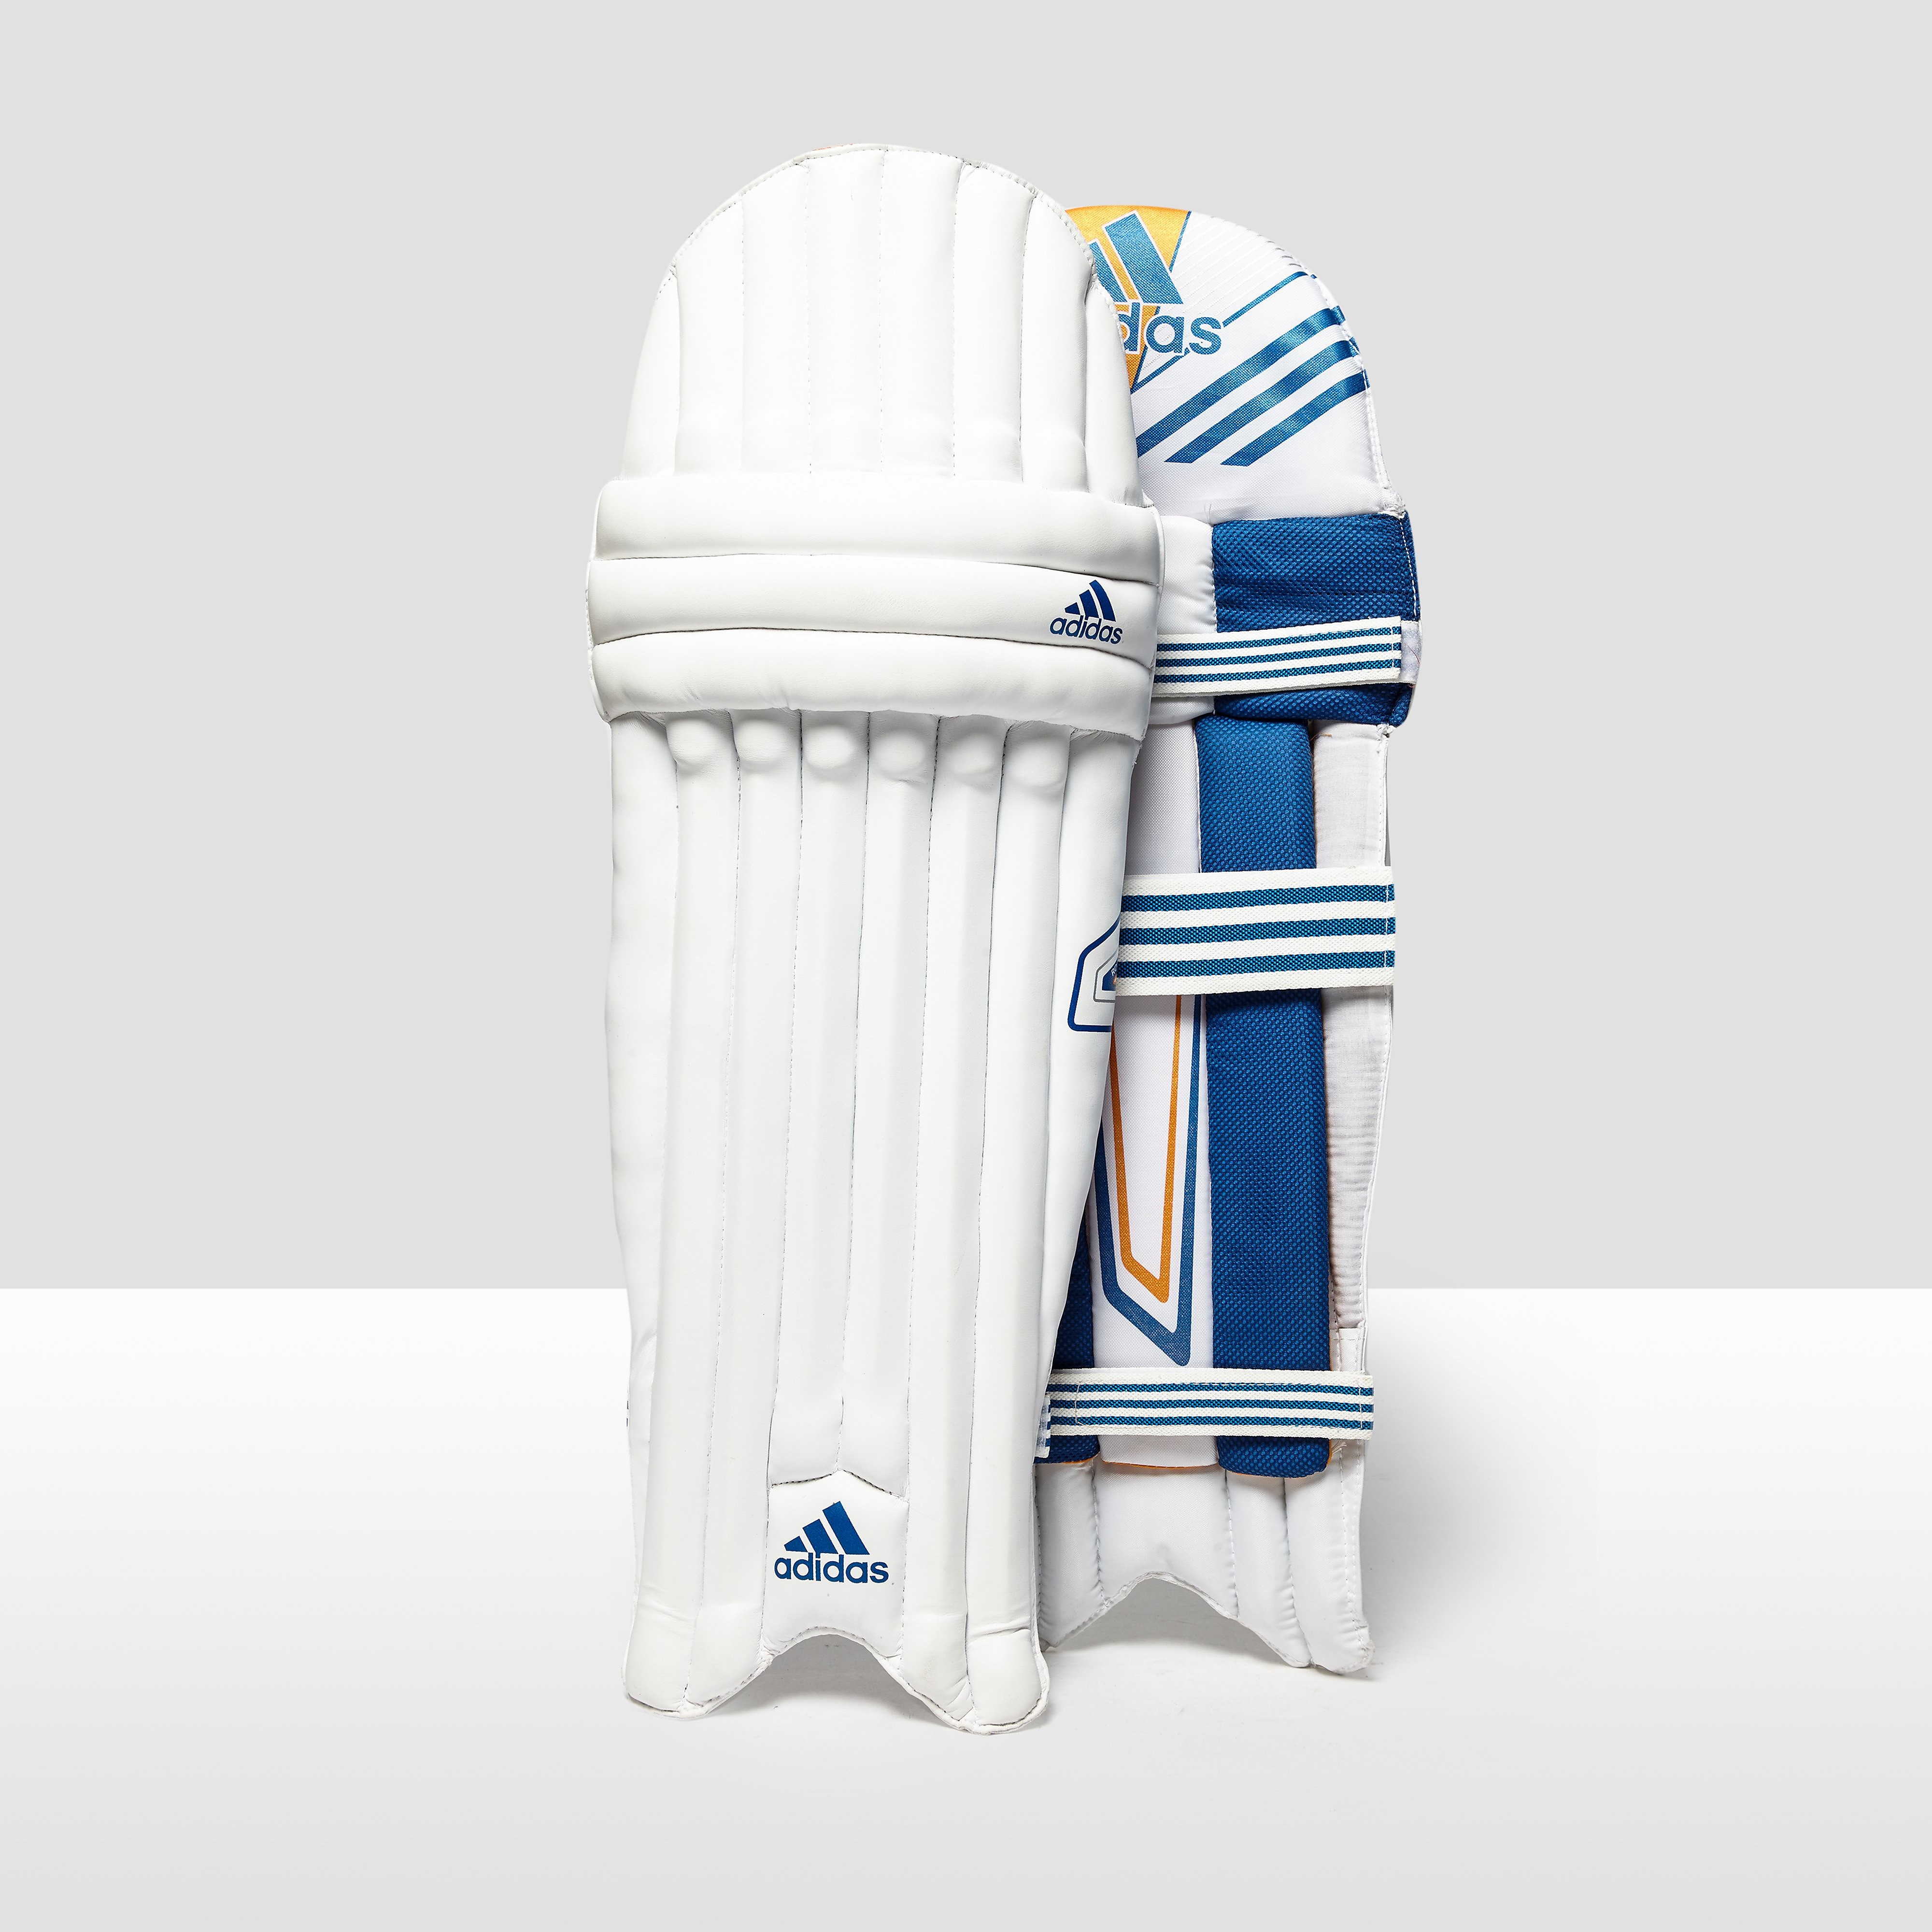 adidas Junior Rookie Batting Pads